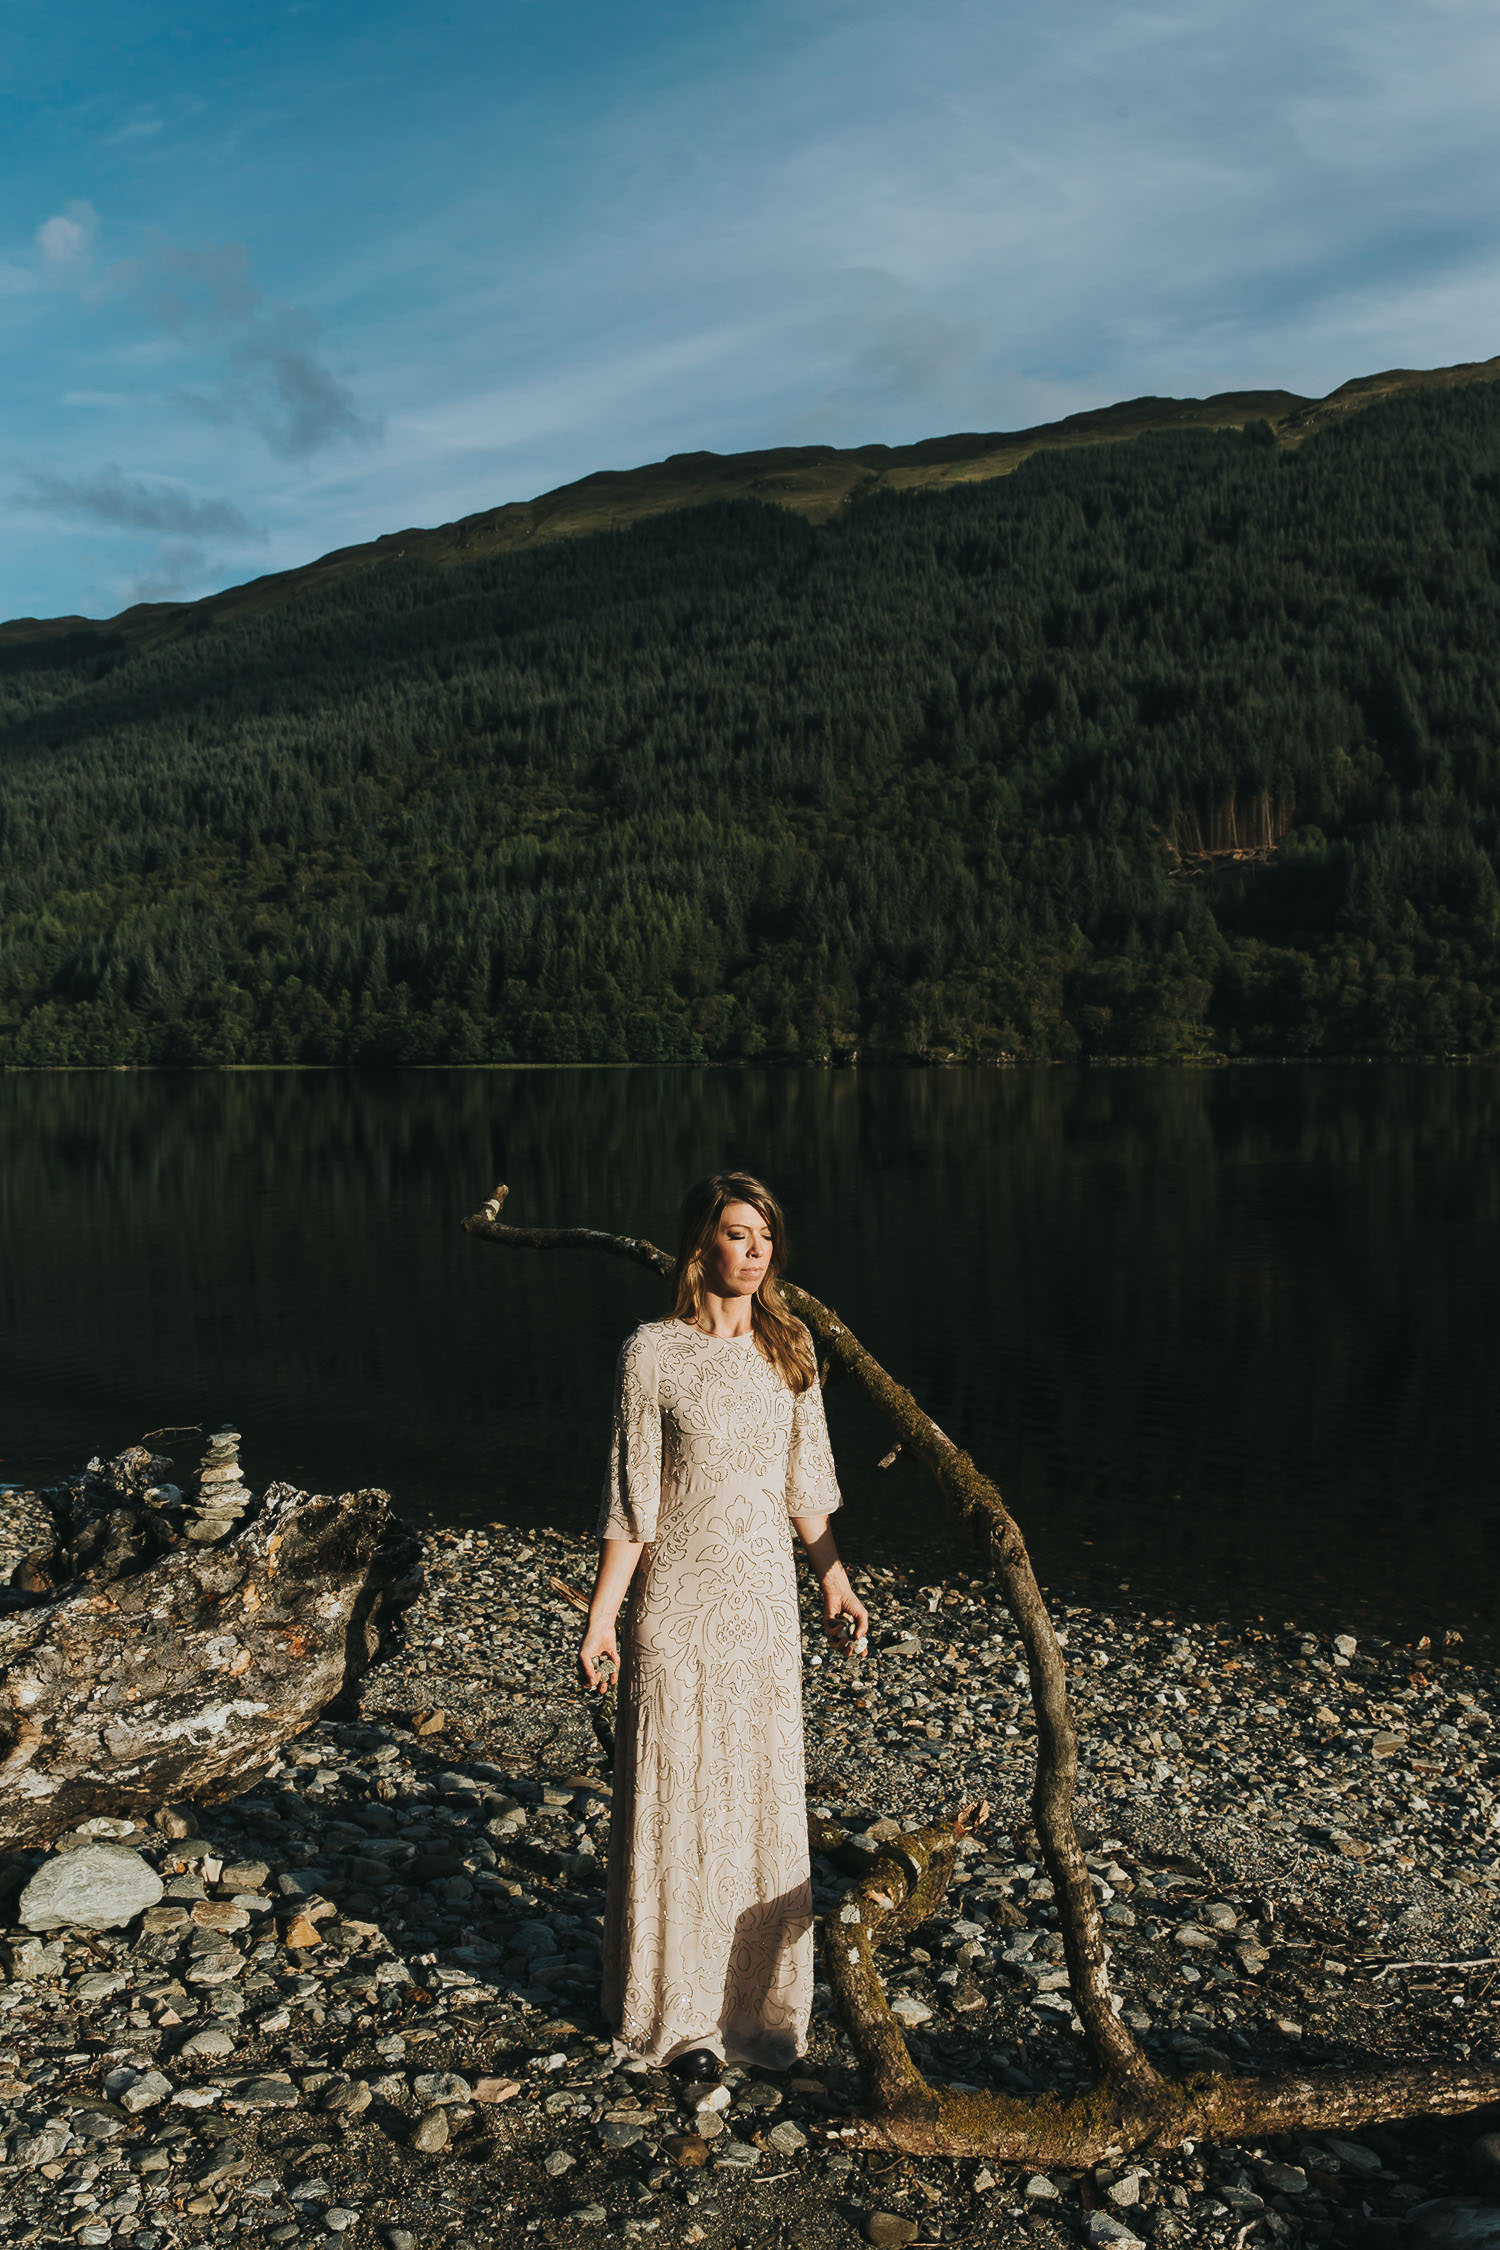 Loch-highland-elopement-wedding-2.jpg